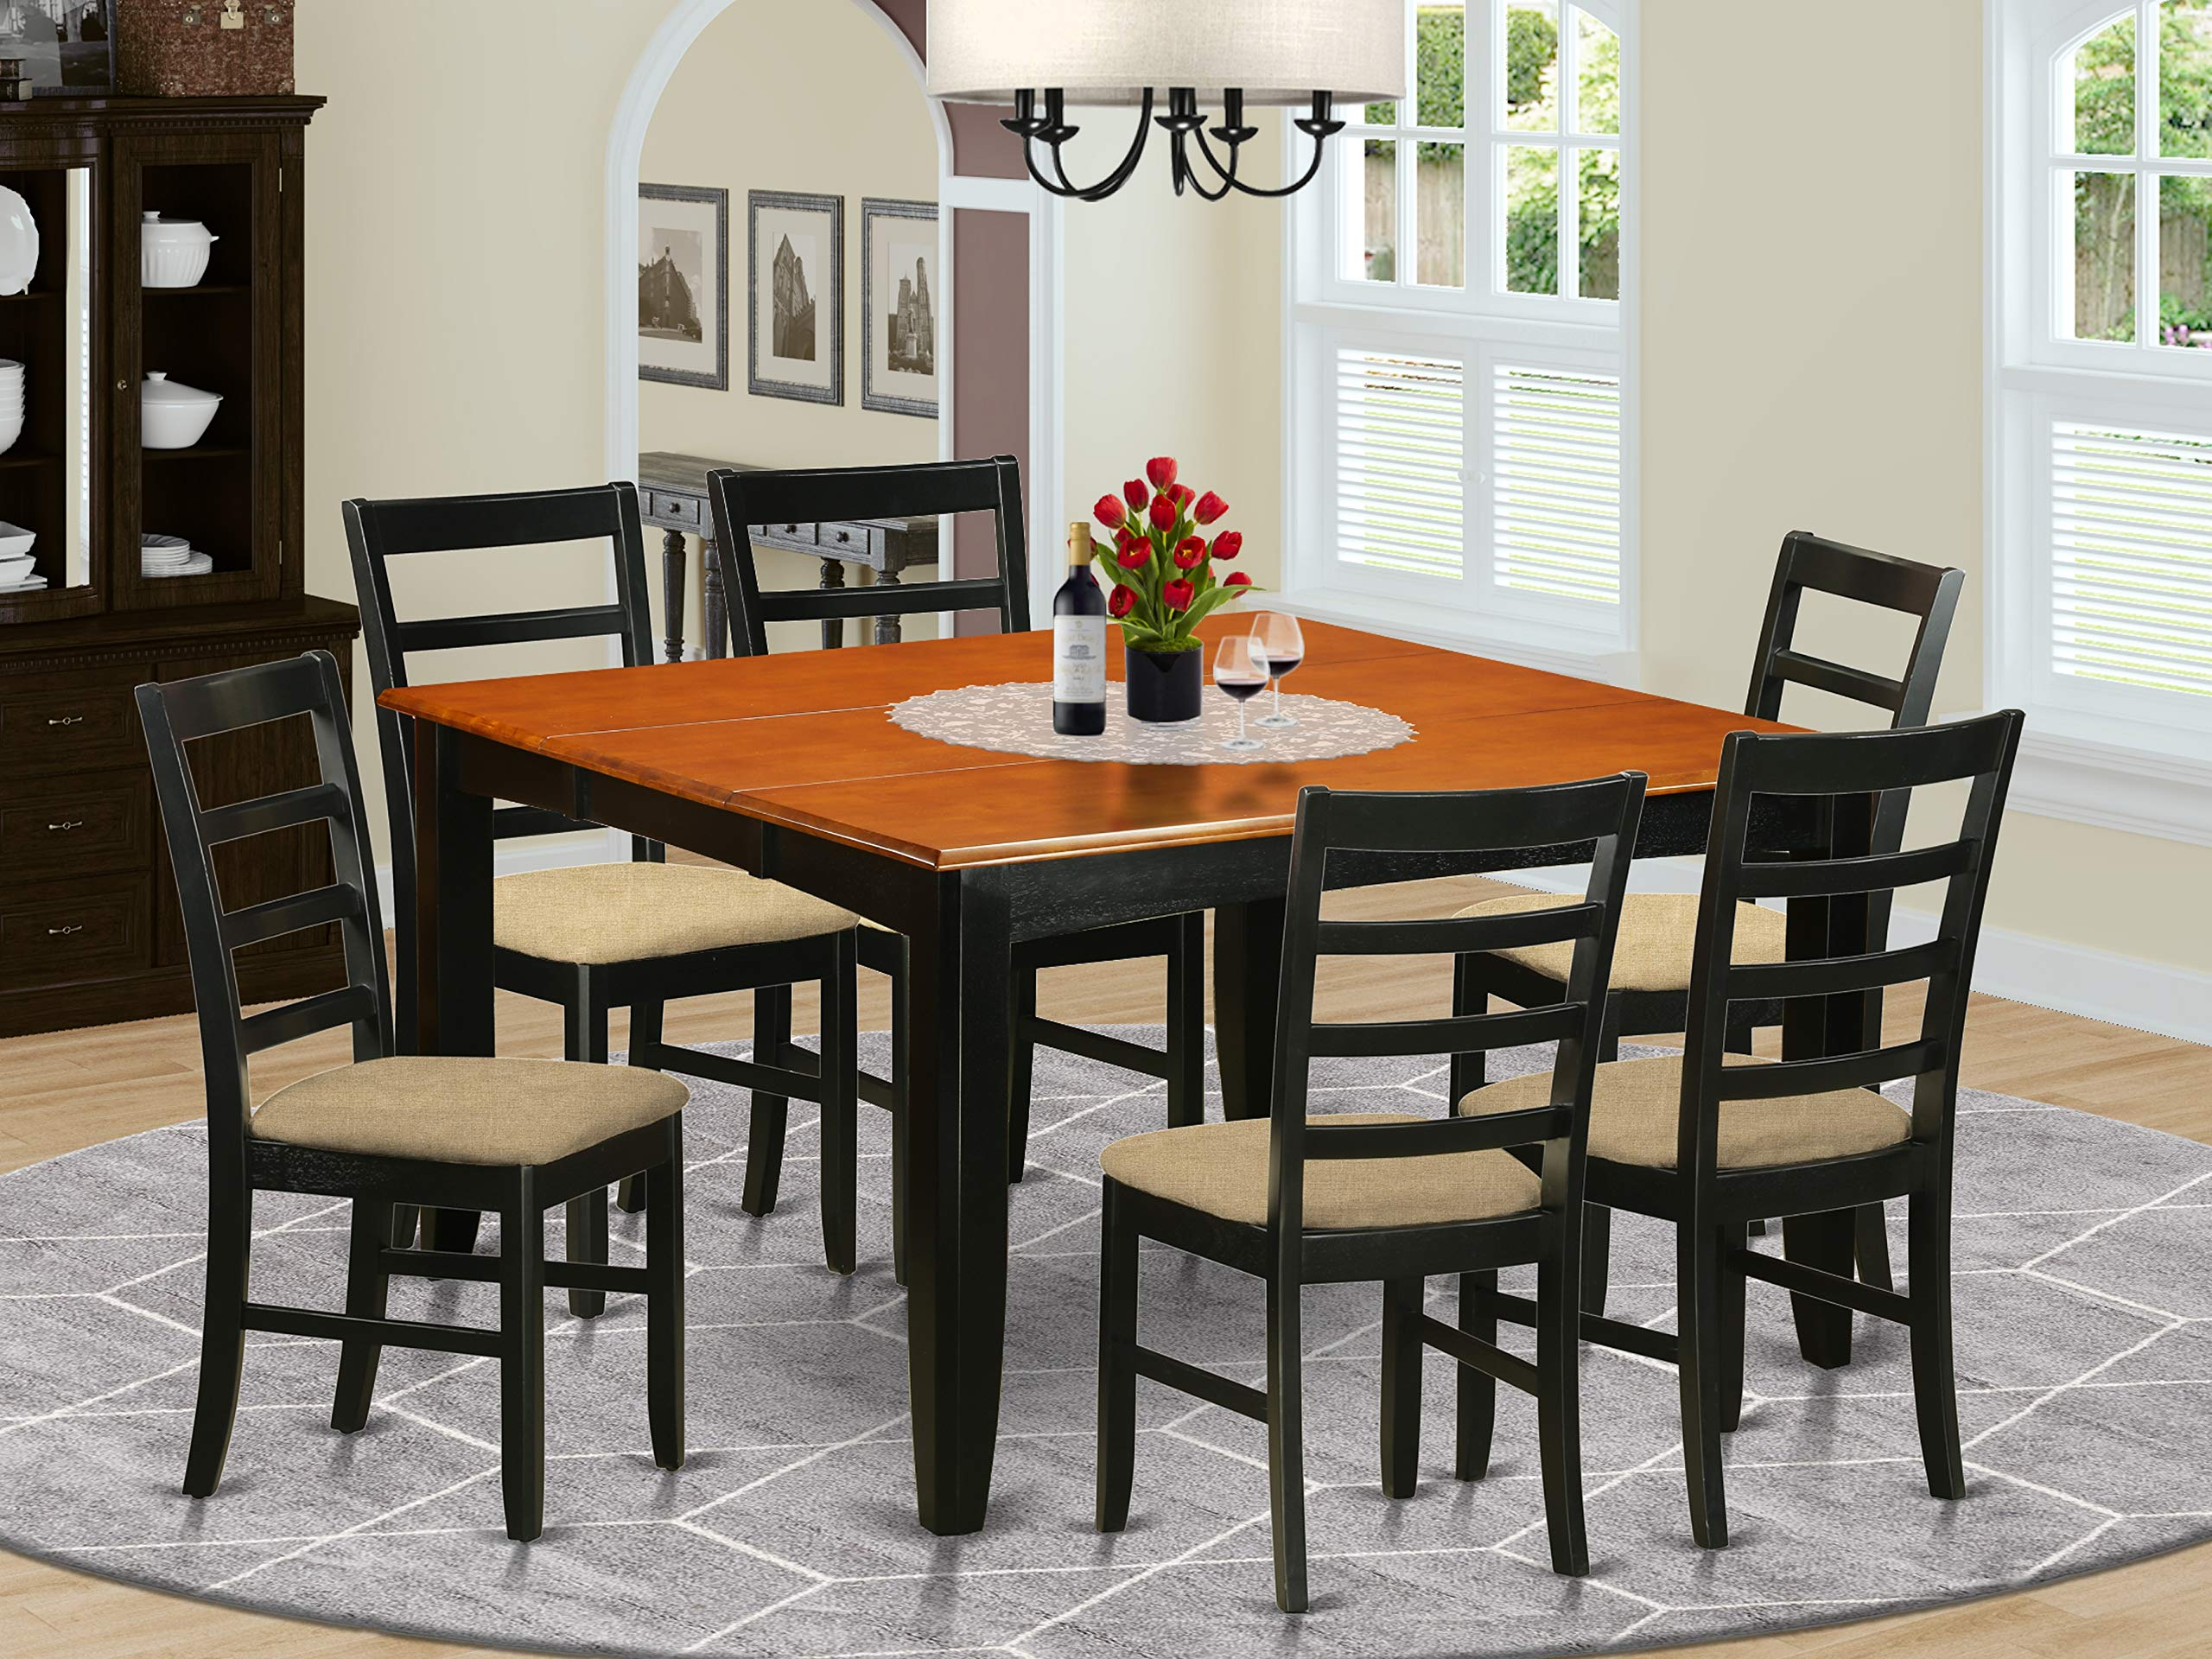 7 PC Kitchen Table set-Dining Table and 6 Wood Dining Chairs